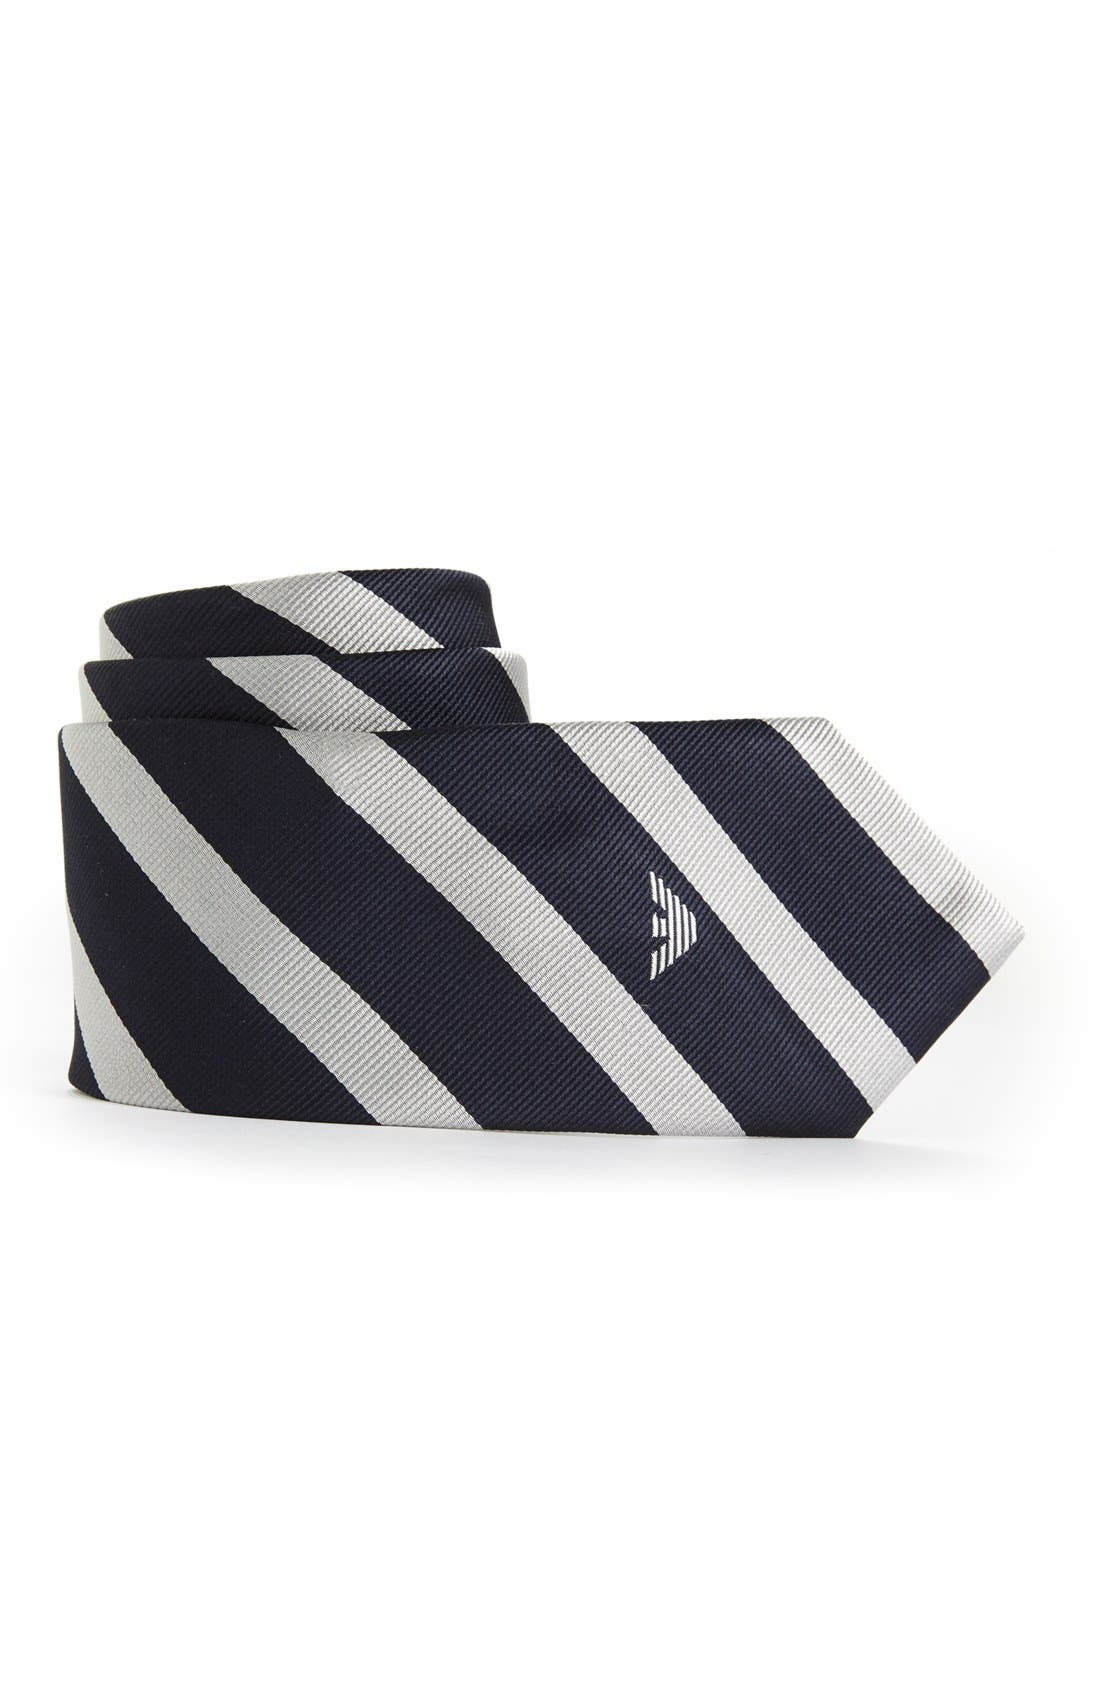 Alternate Image 1 Selected - Armani Junior Silk Tie (Boys)